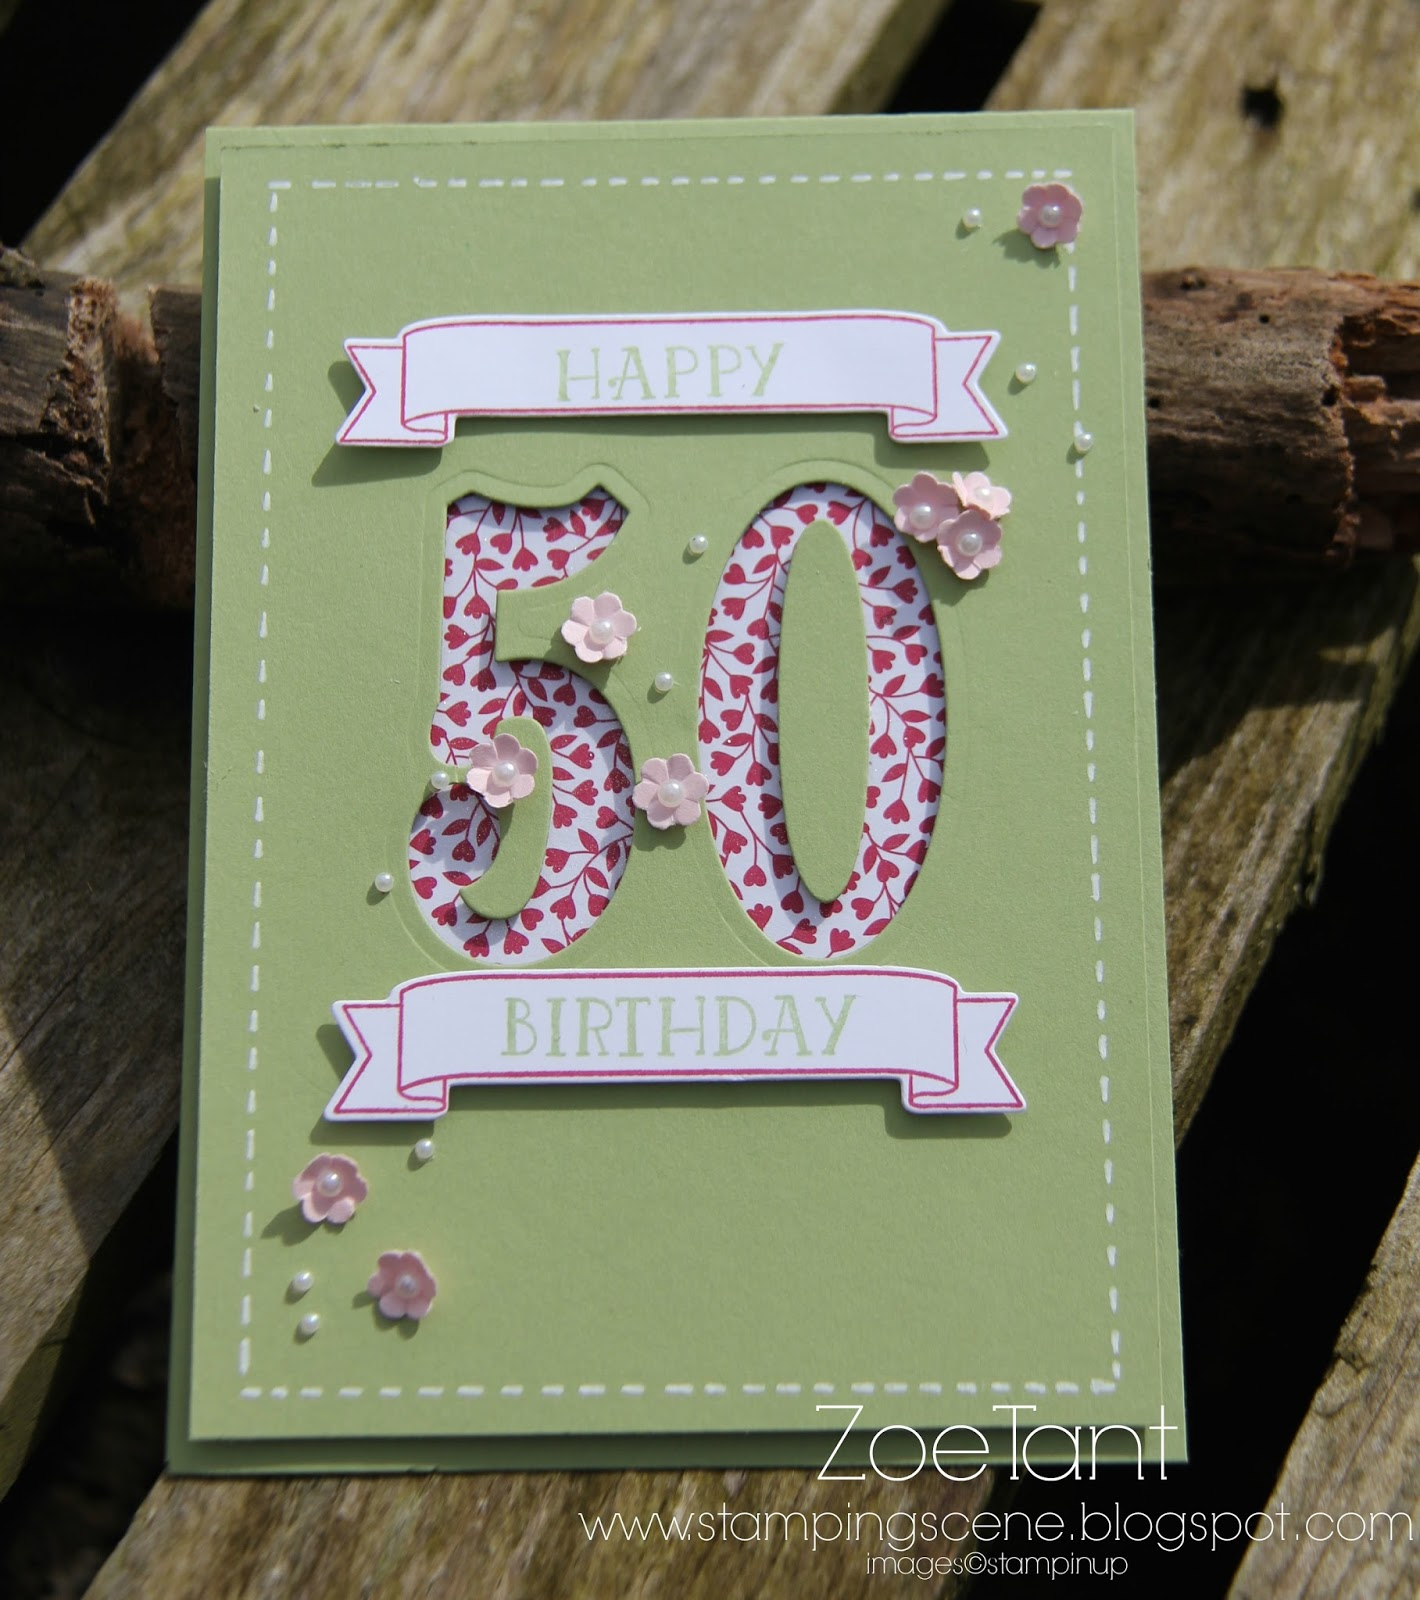 Stampin up birthday card ideas best happy birthday cards new year stampin up birthday card ideas bookmarktalkfo Gallery